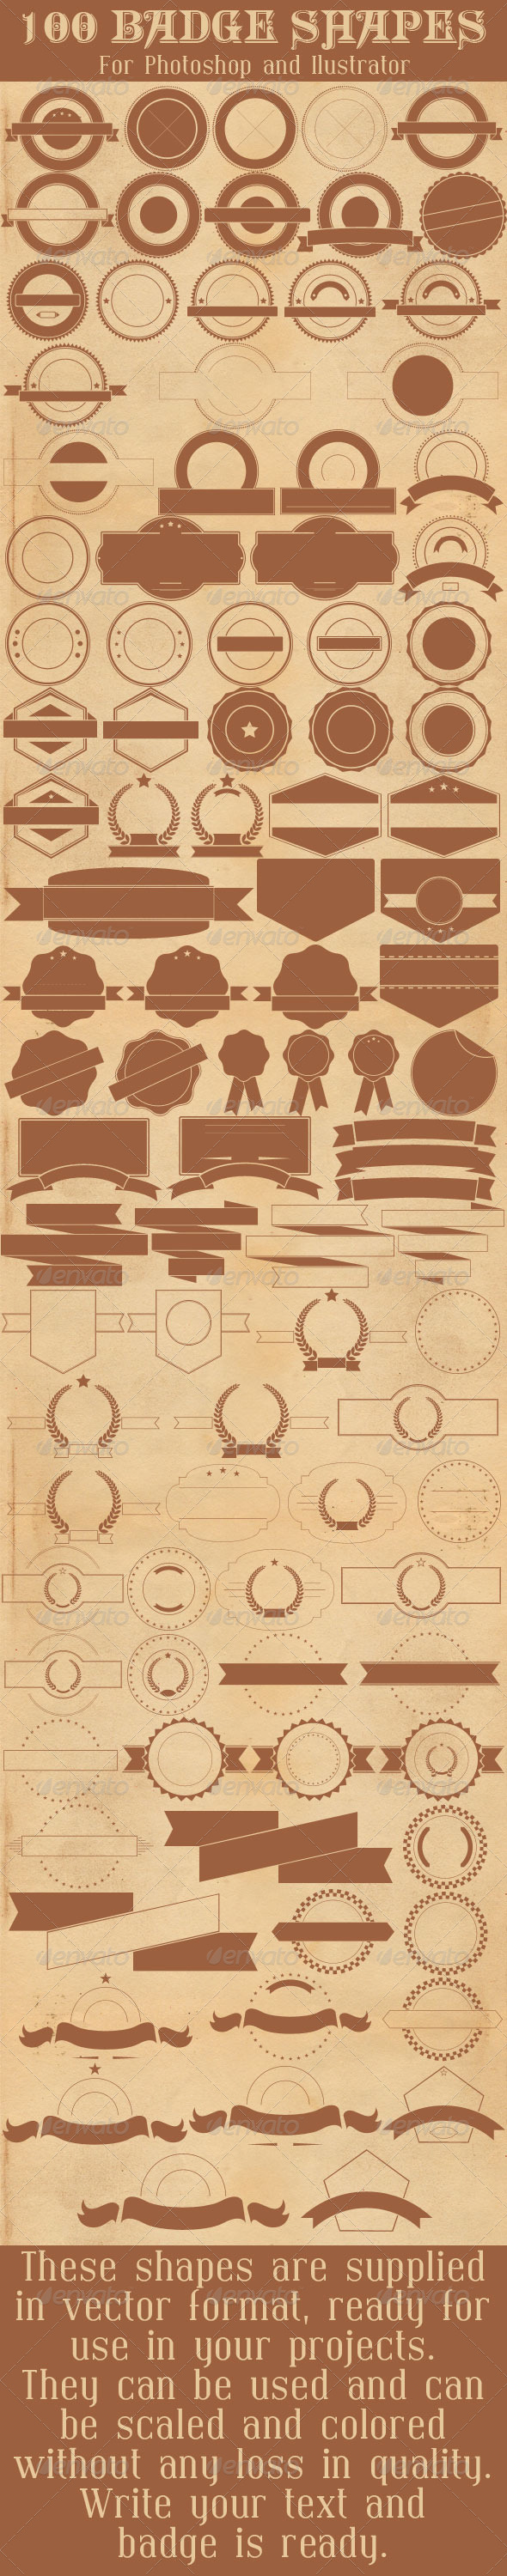 GraphicRiver 100 Badge Shapes 7784960